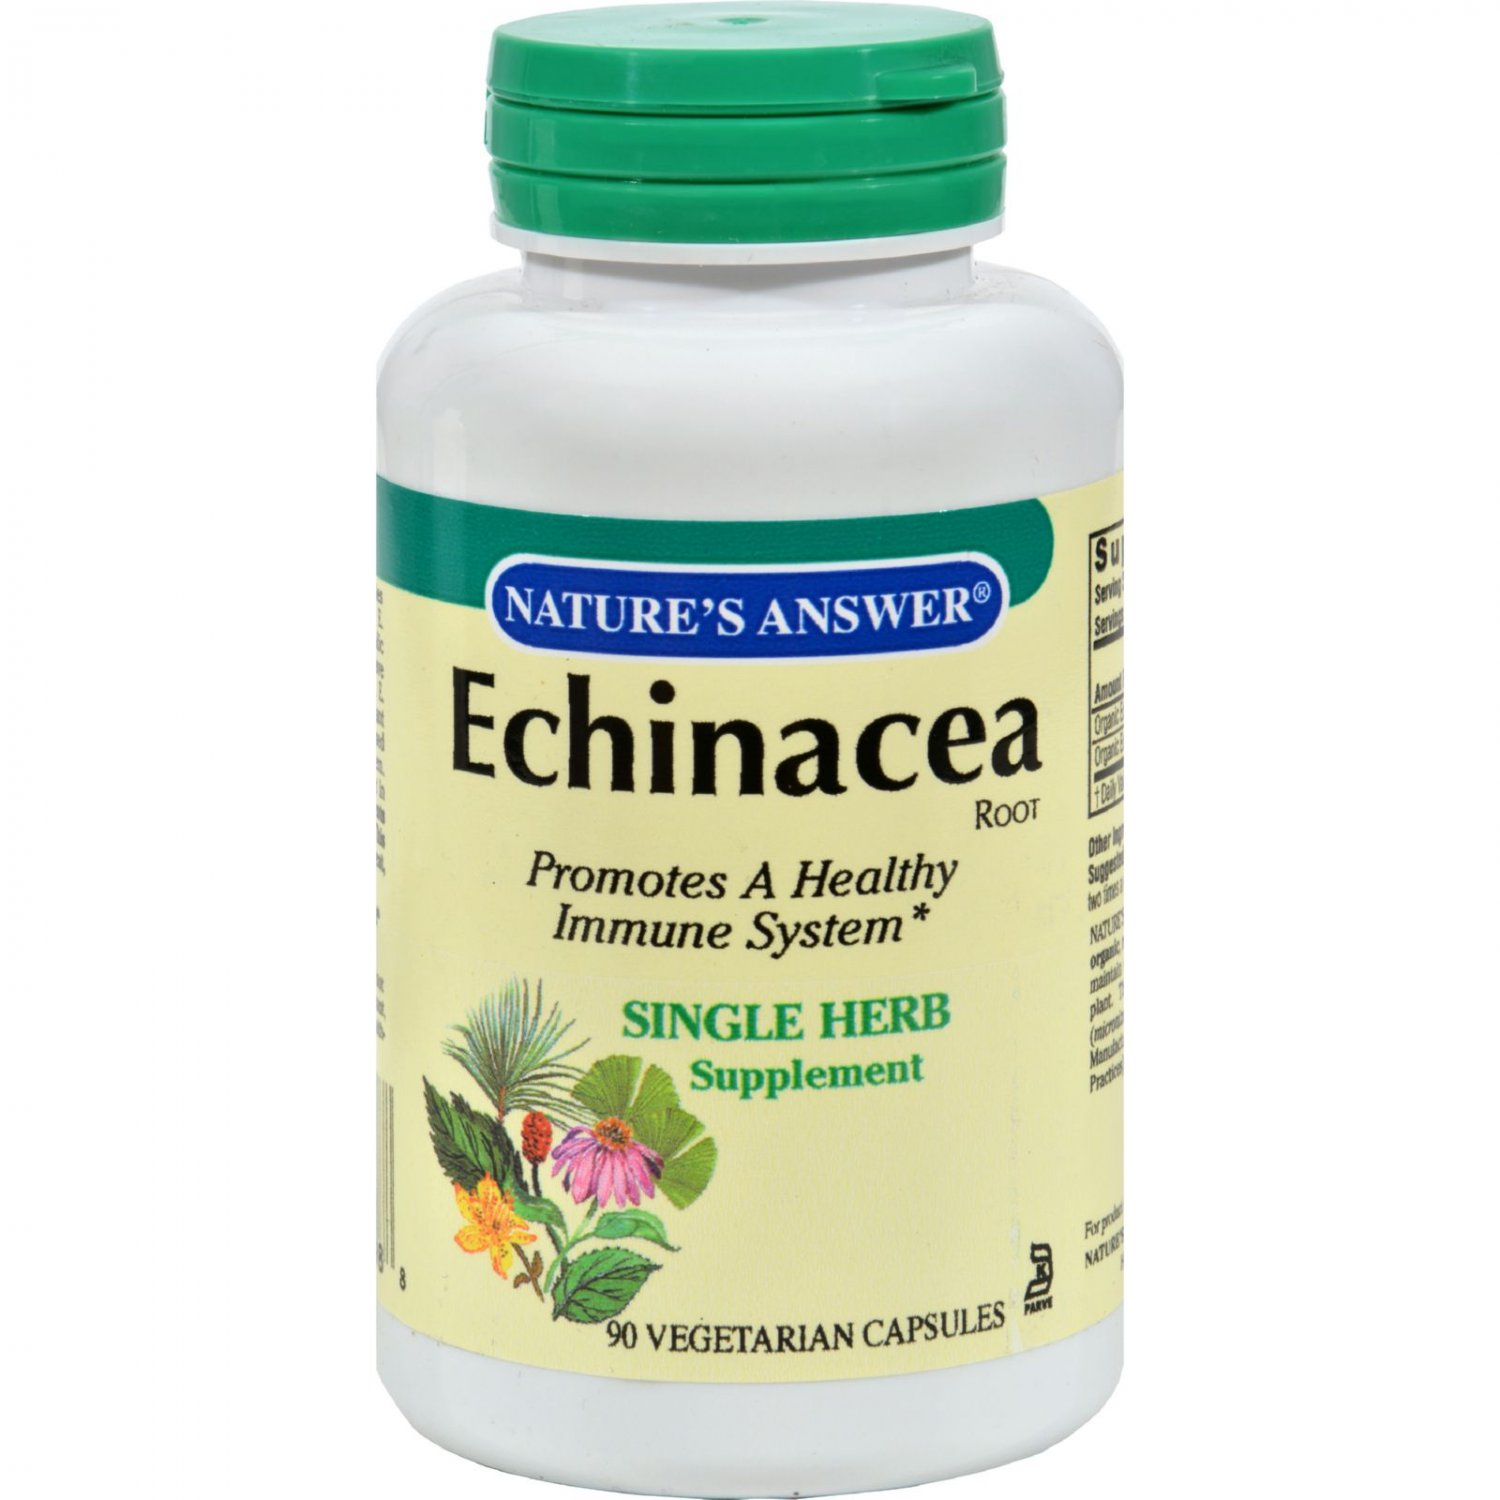 Nature's Answer Echinacea Root - 90 Vegetarian Capsules